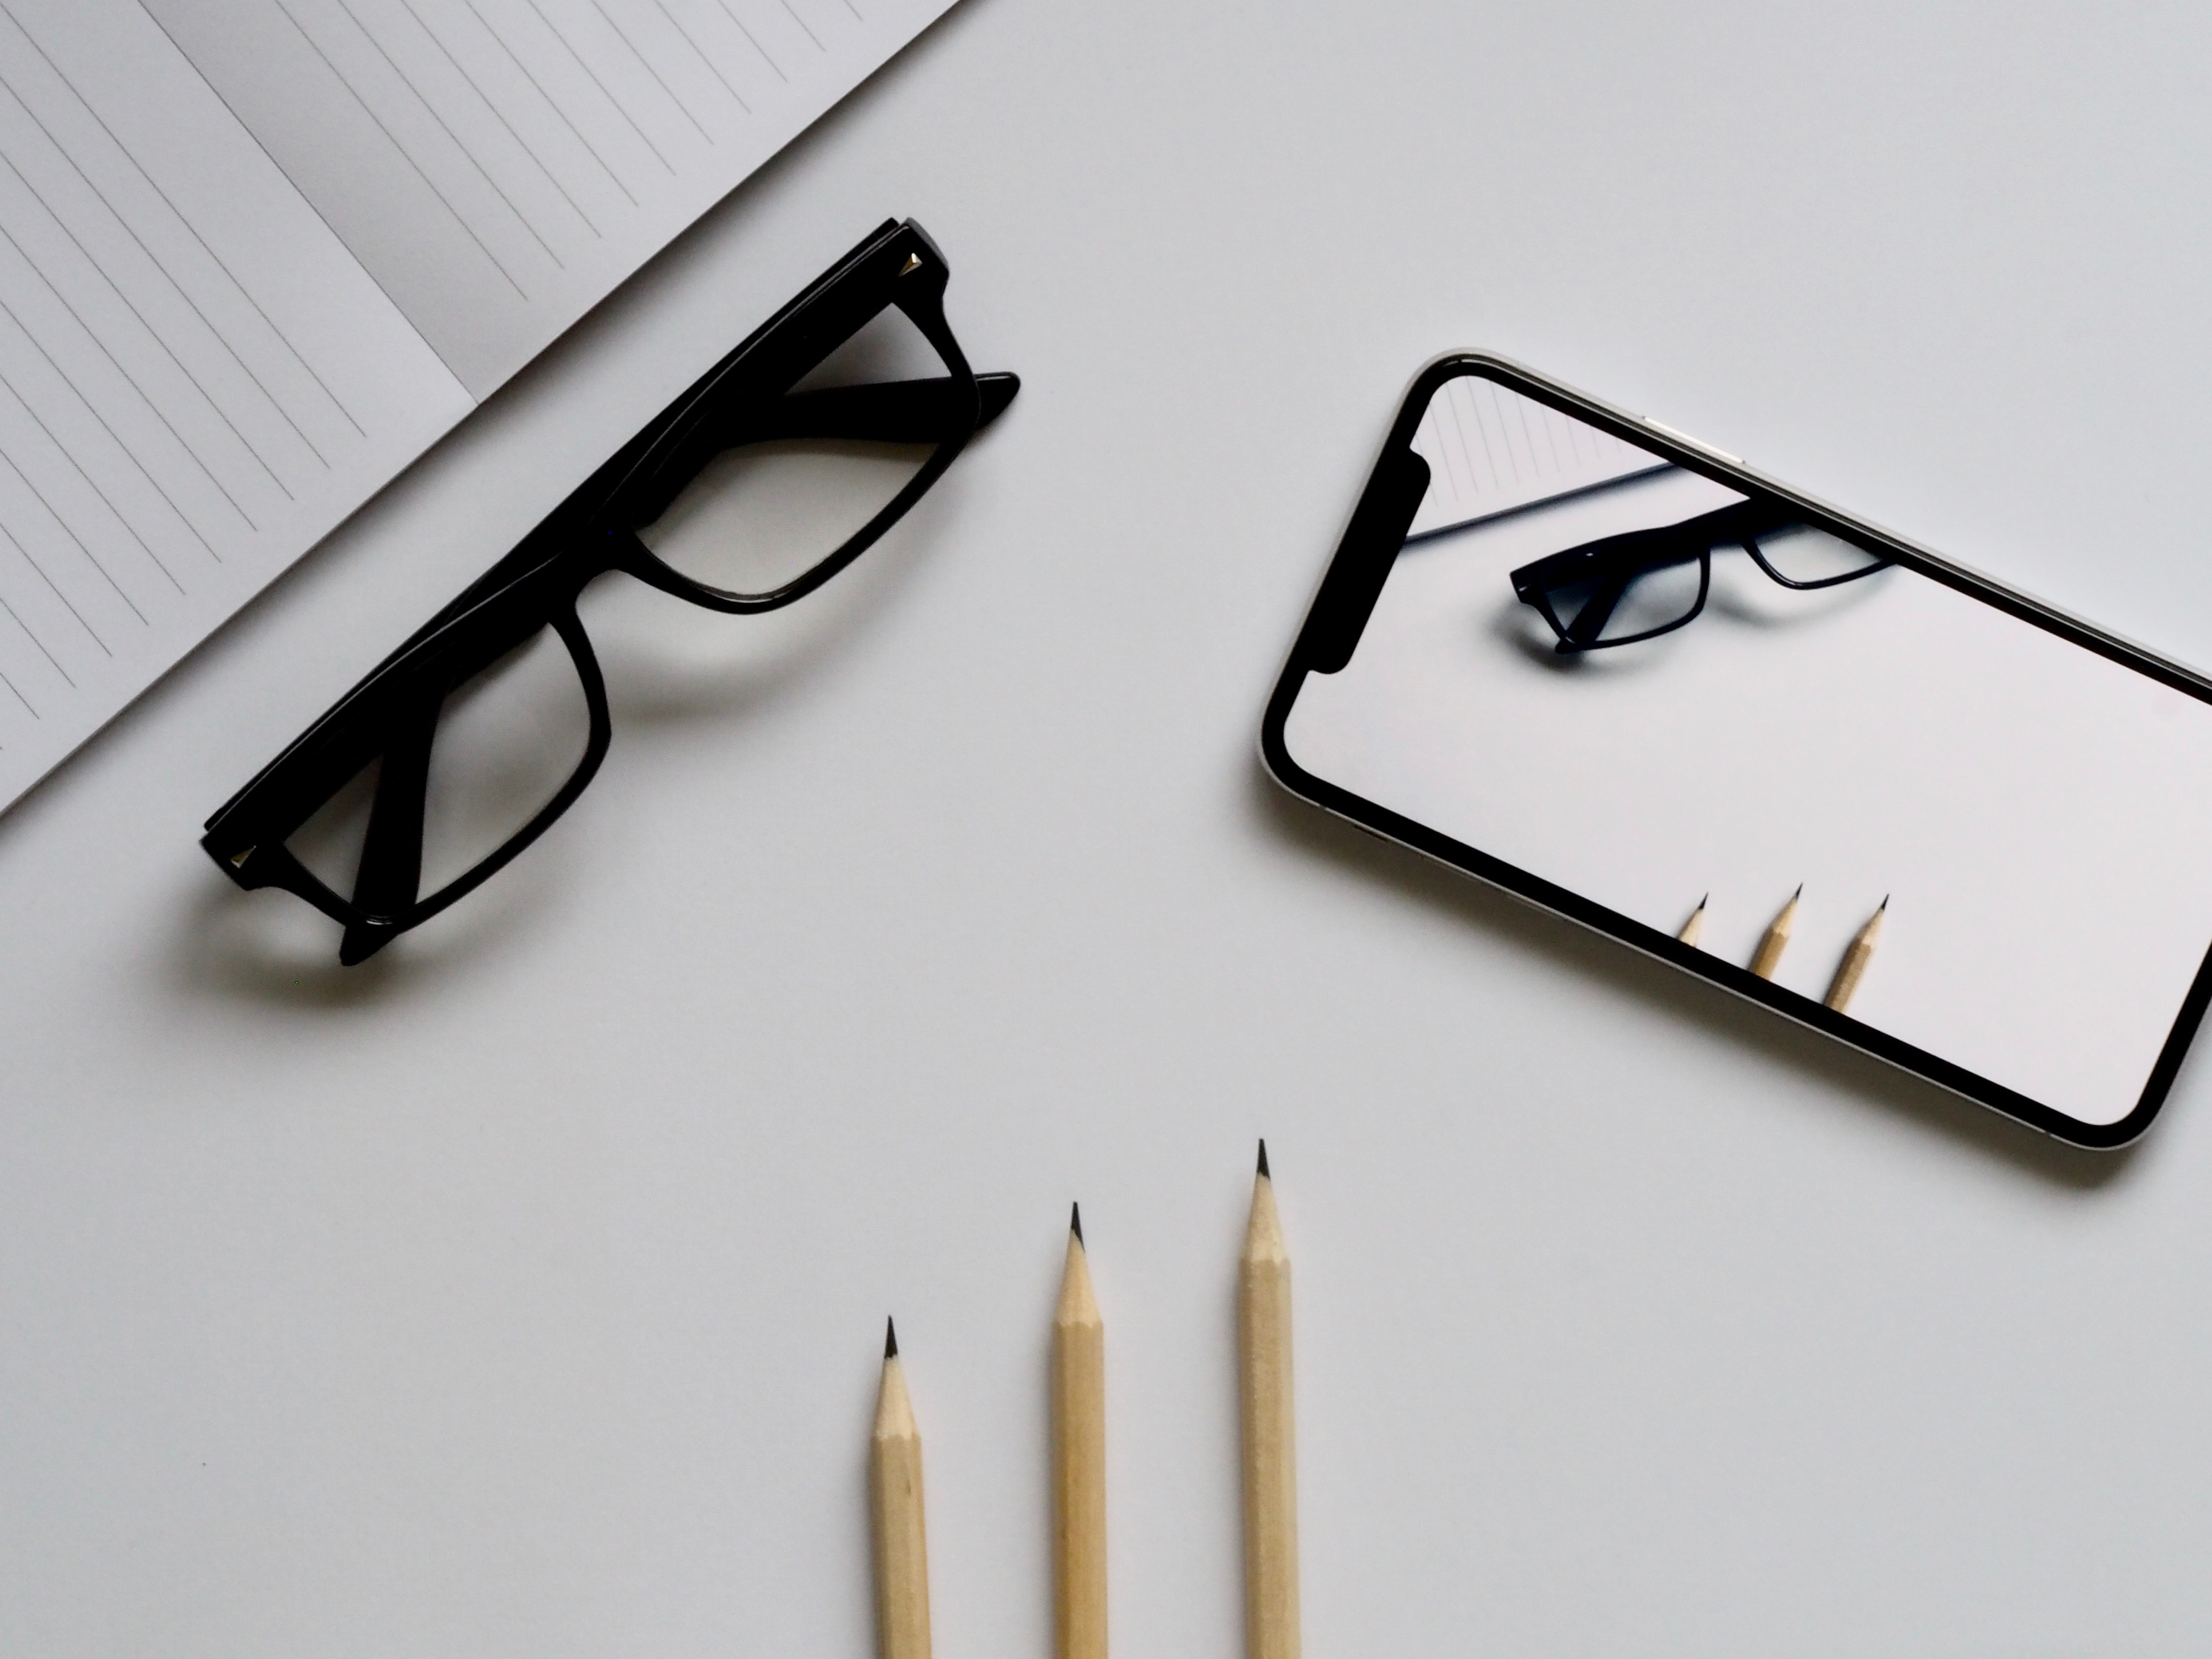 Three Pencils, Eyeglasses, and Smartphone on White Table, Black, Technology, Smartphone, Reflection, HQ Photo